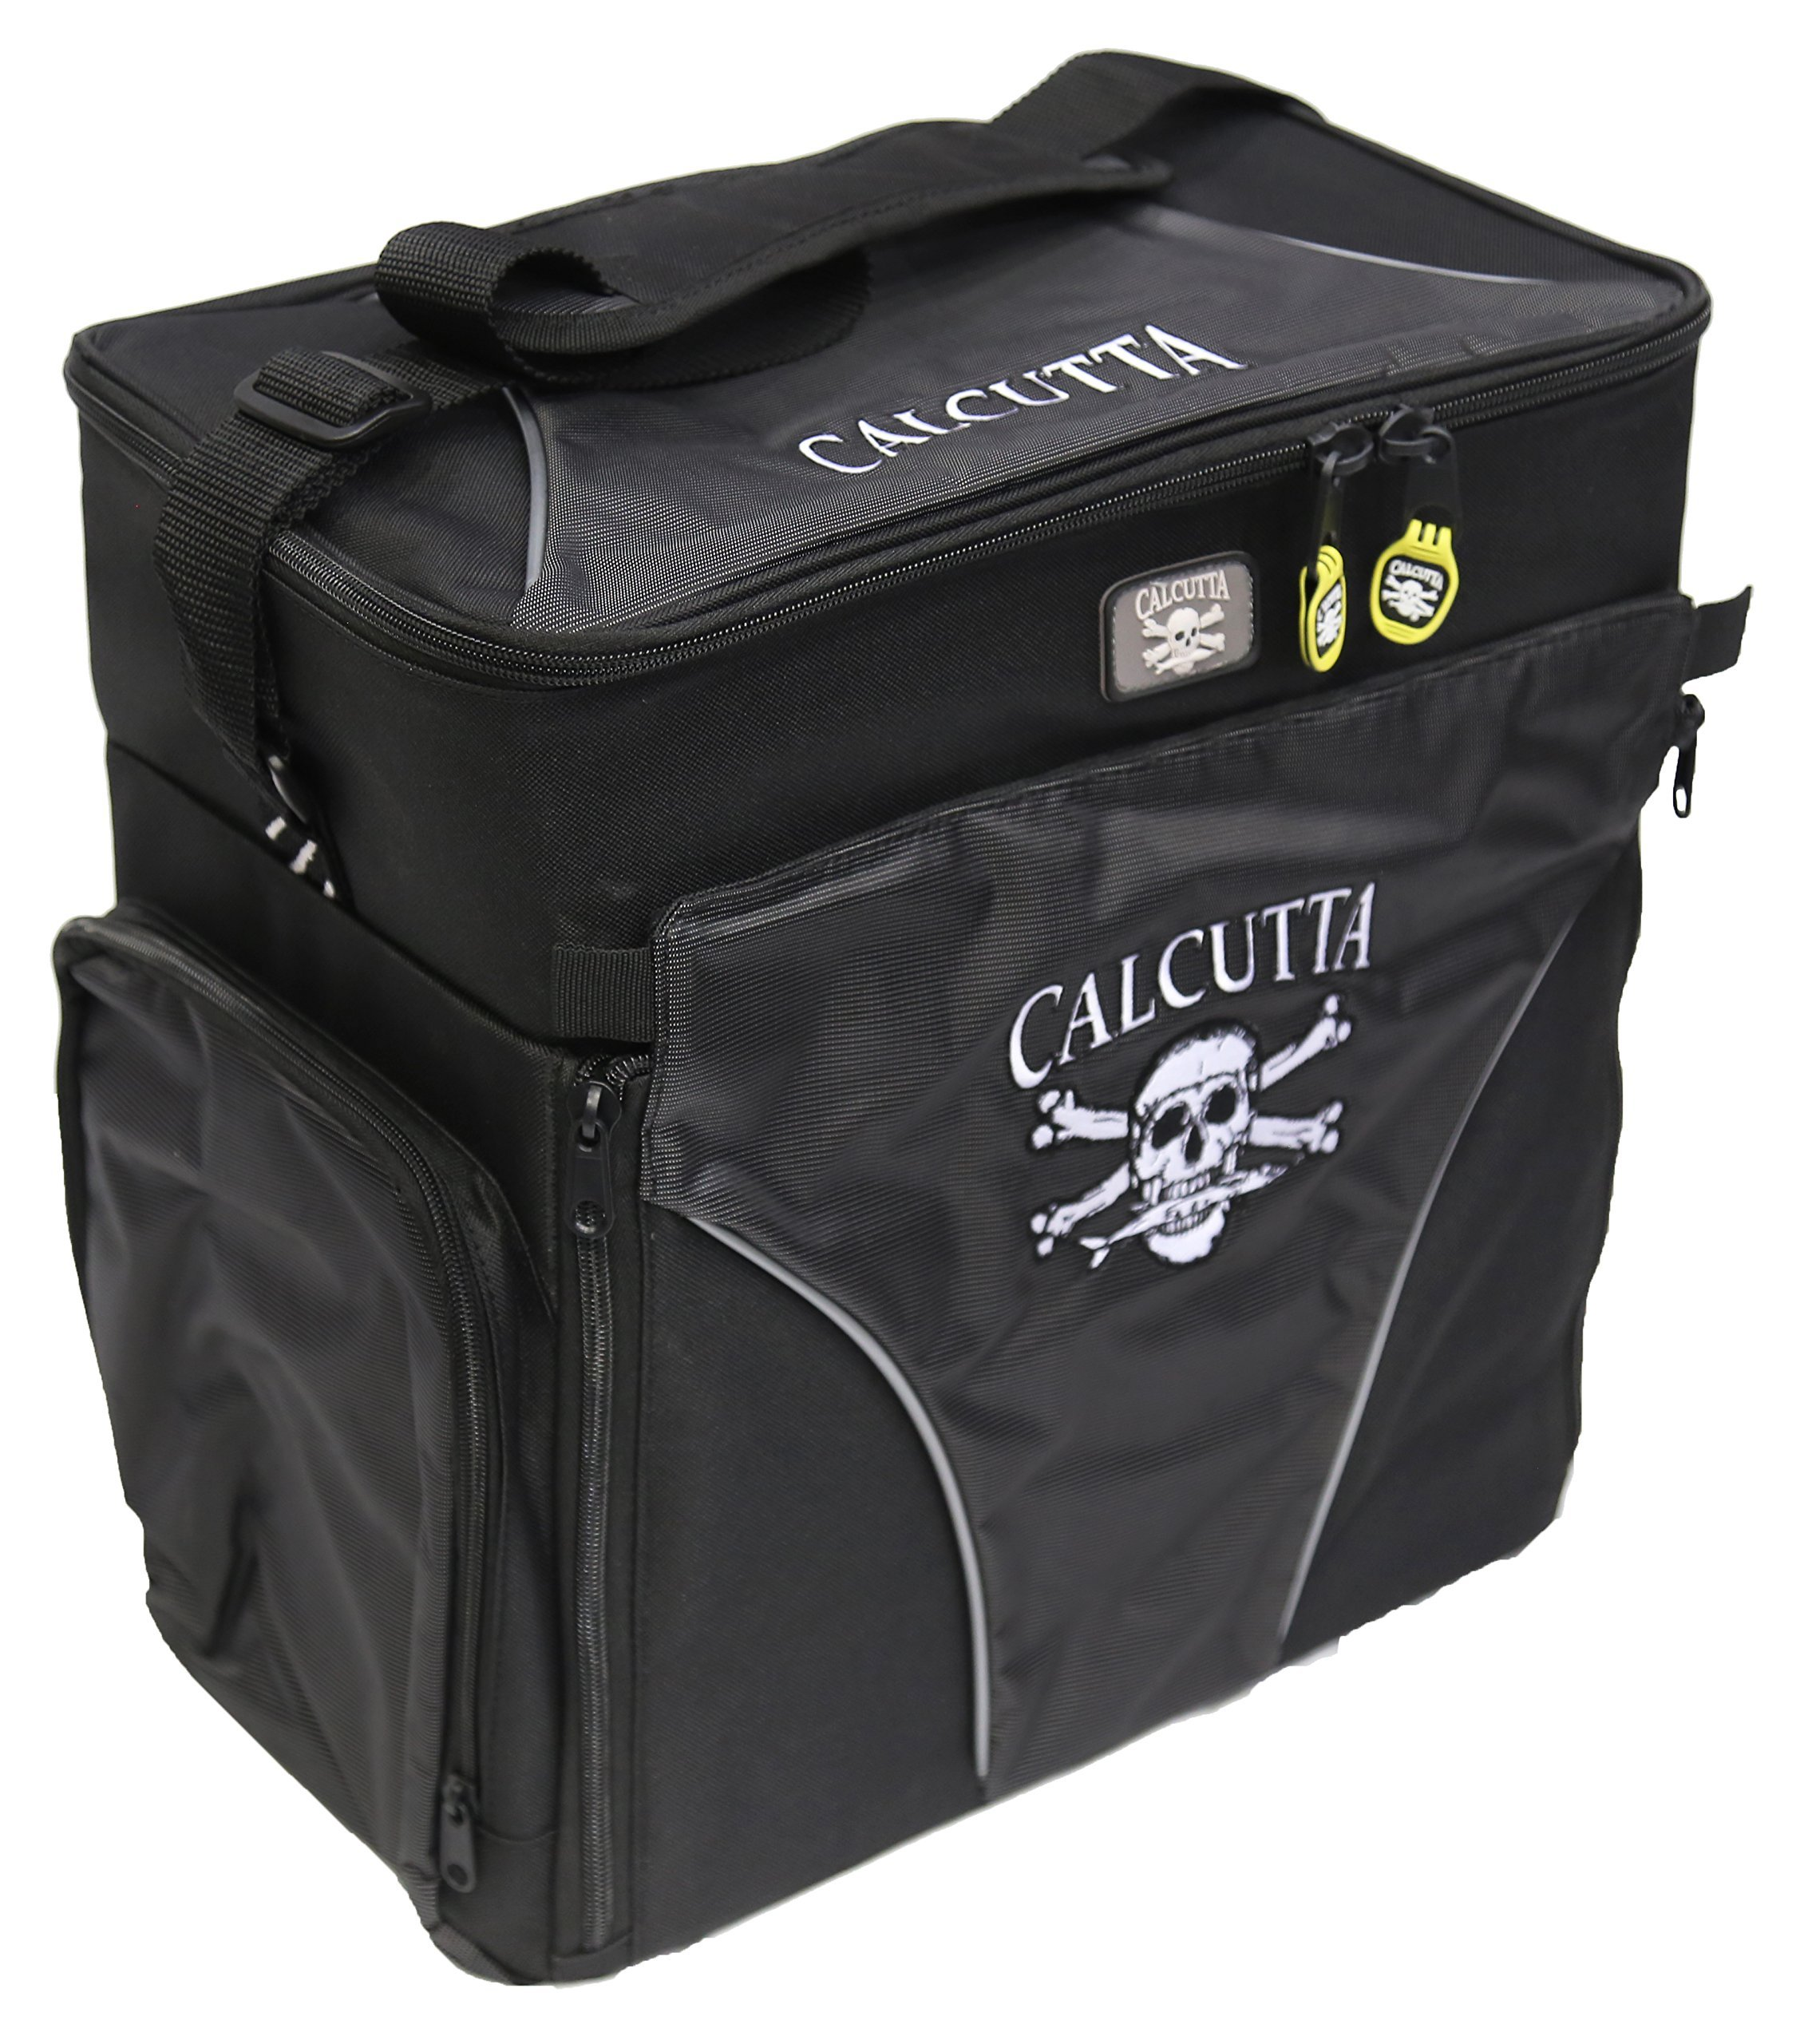 Calcutta 5Tray Tackle Bag